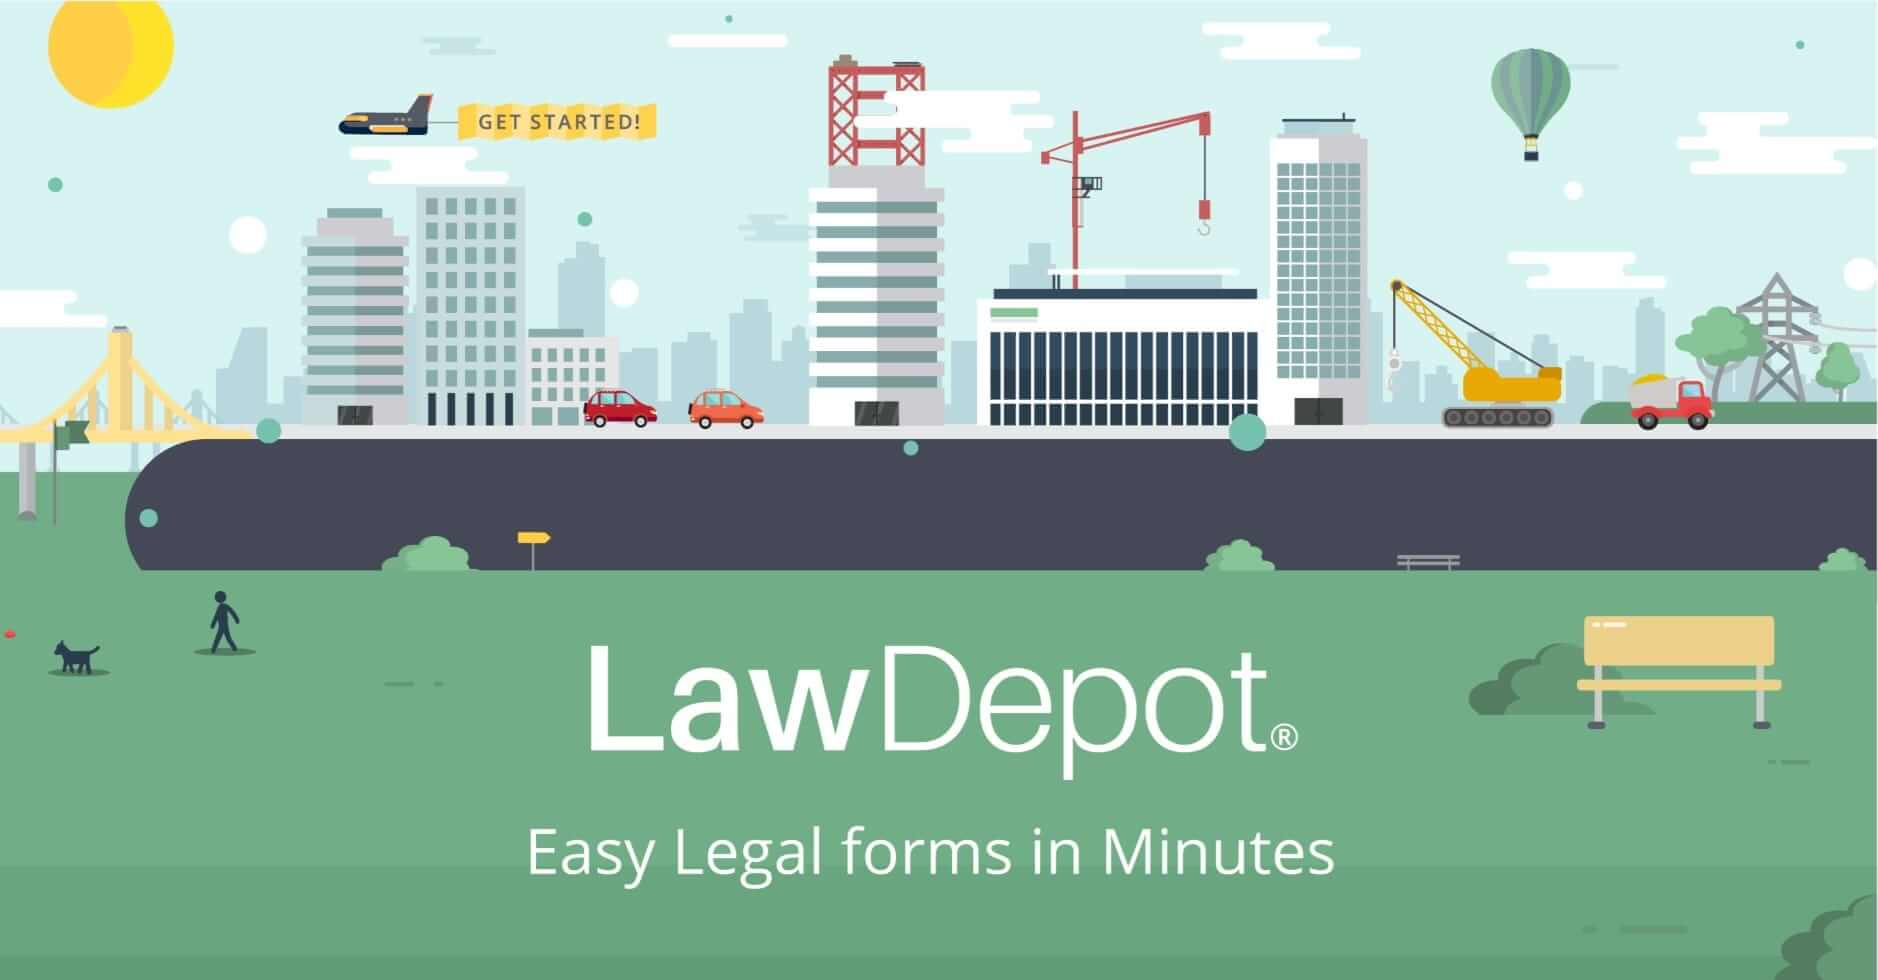 Free Legal Documents, Forms & Contracts | LawDepot